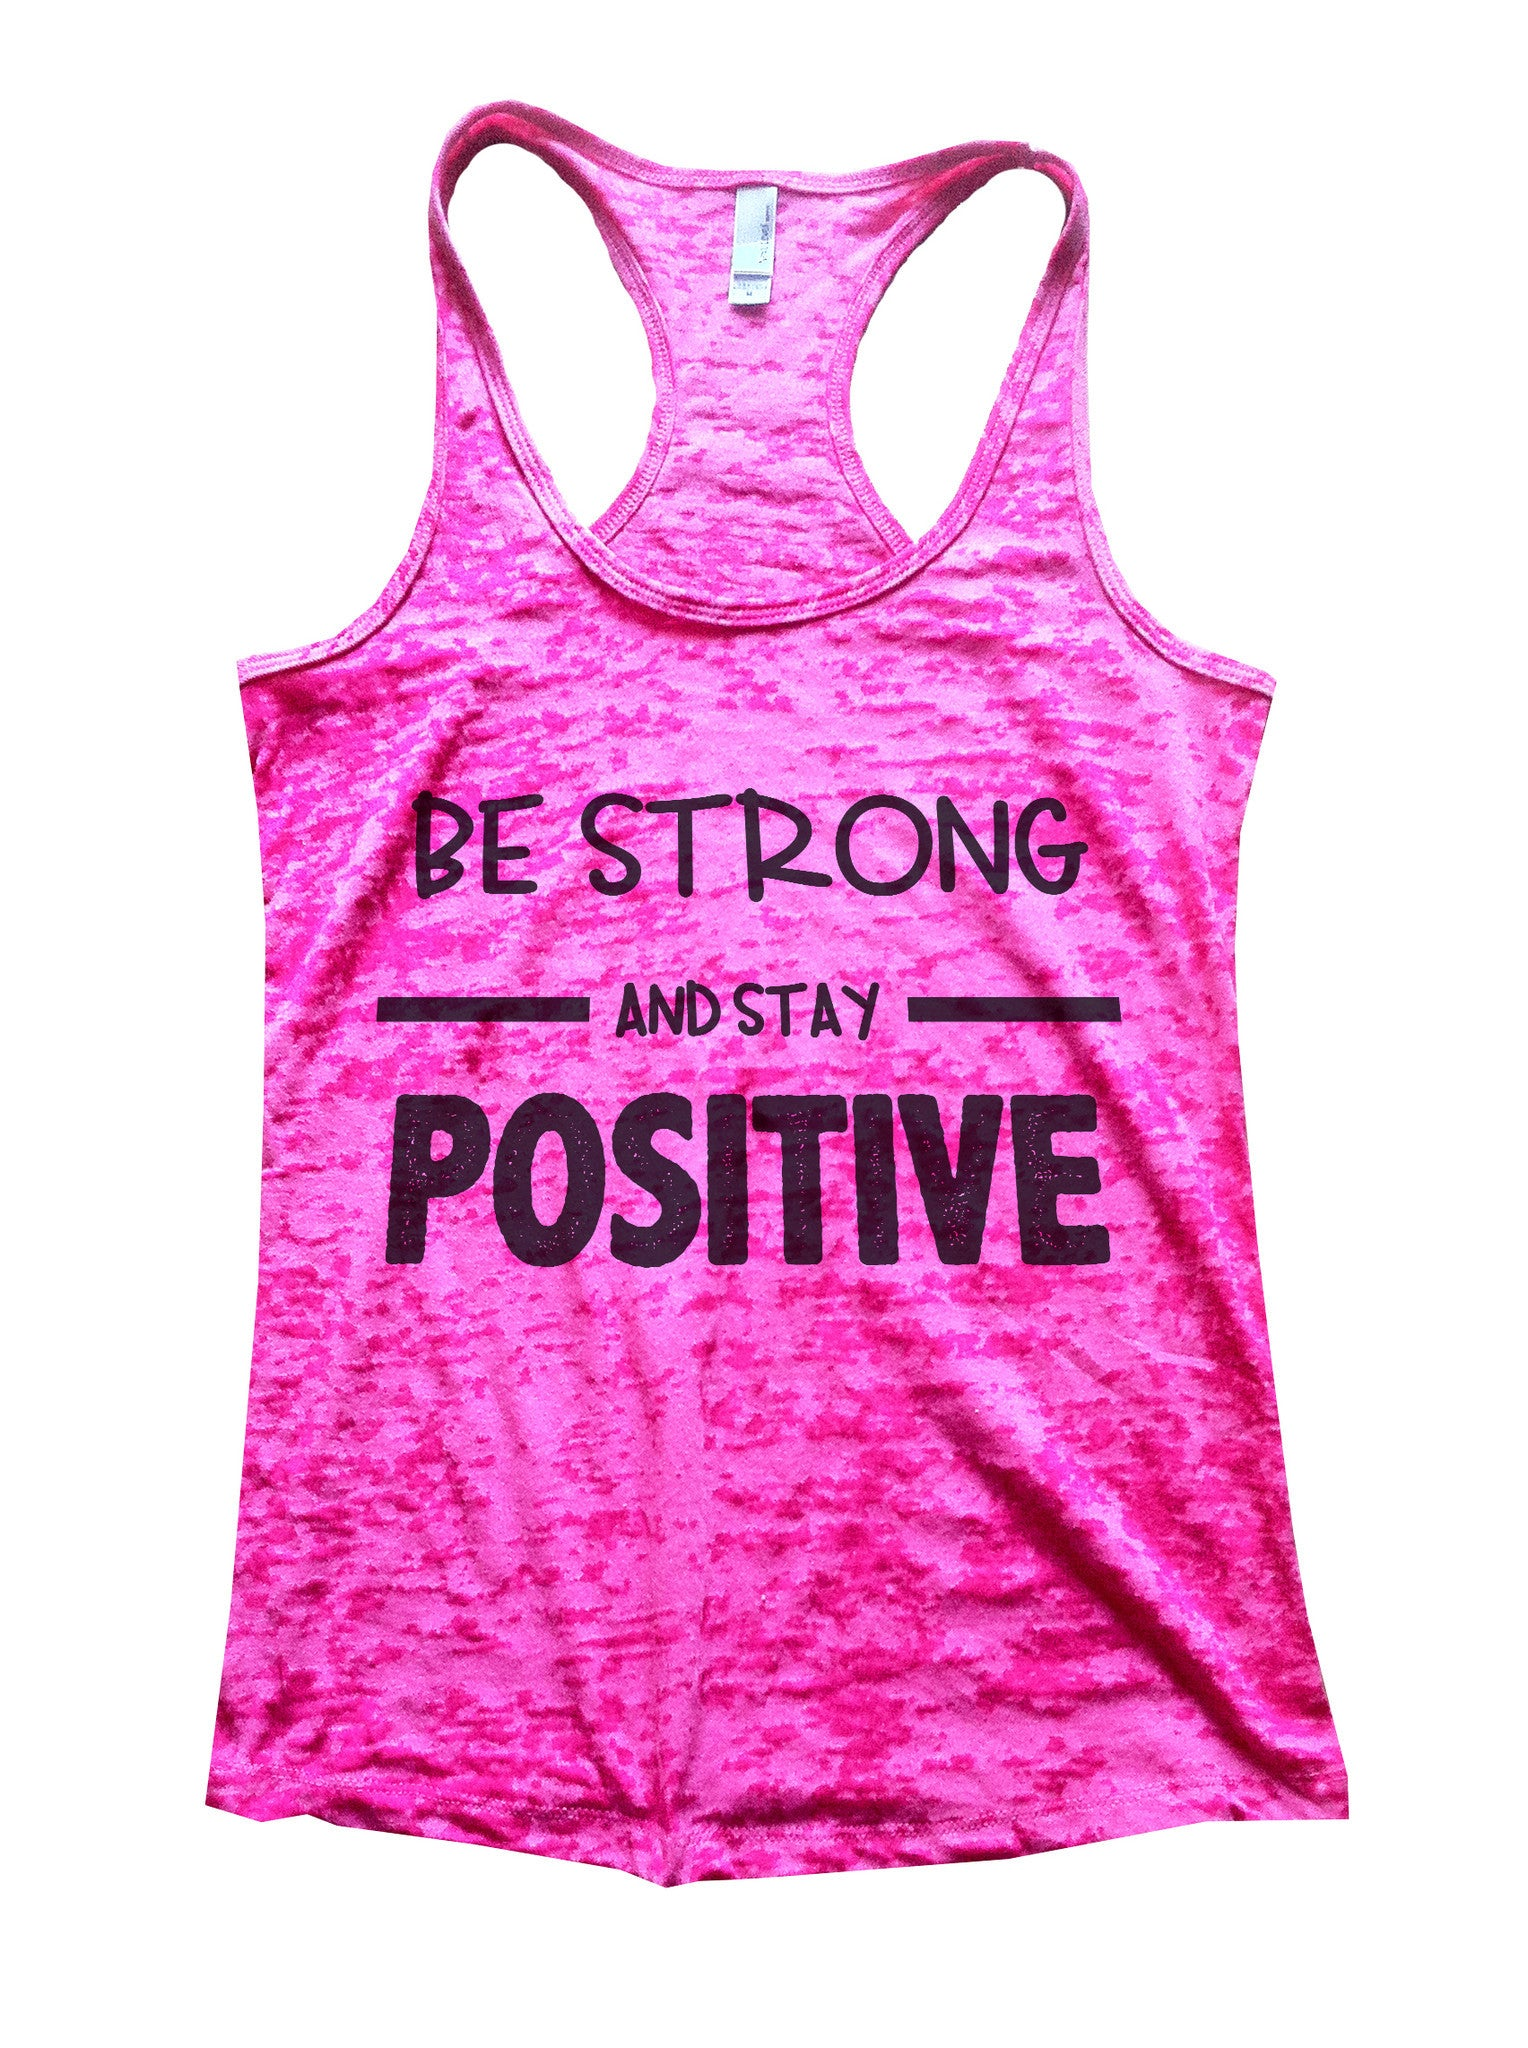 Be Strong And Stay Positive Womens Burnout Tank Top By BurnoutTankTops.com - 657 - Funny Shirts Tank Tops Burnouts and Triblends  - 5